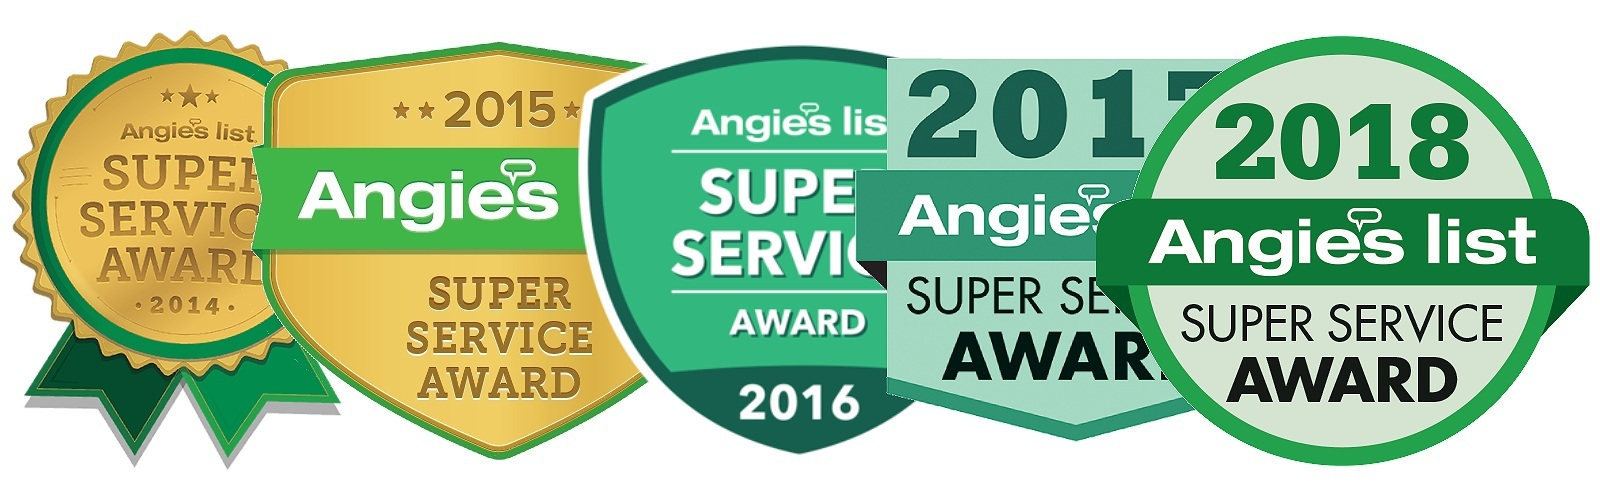 Angie%27s+List+Super+Service+Awards.jpg